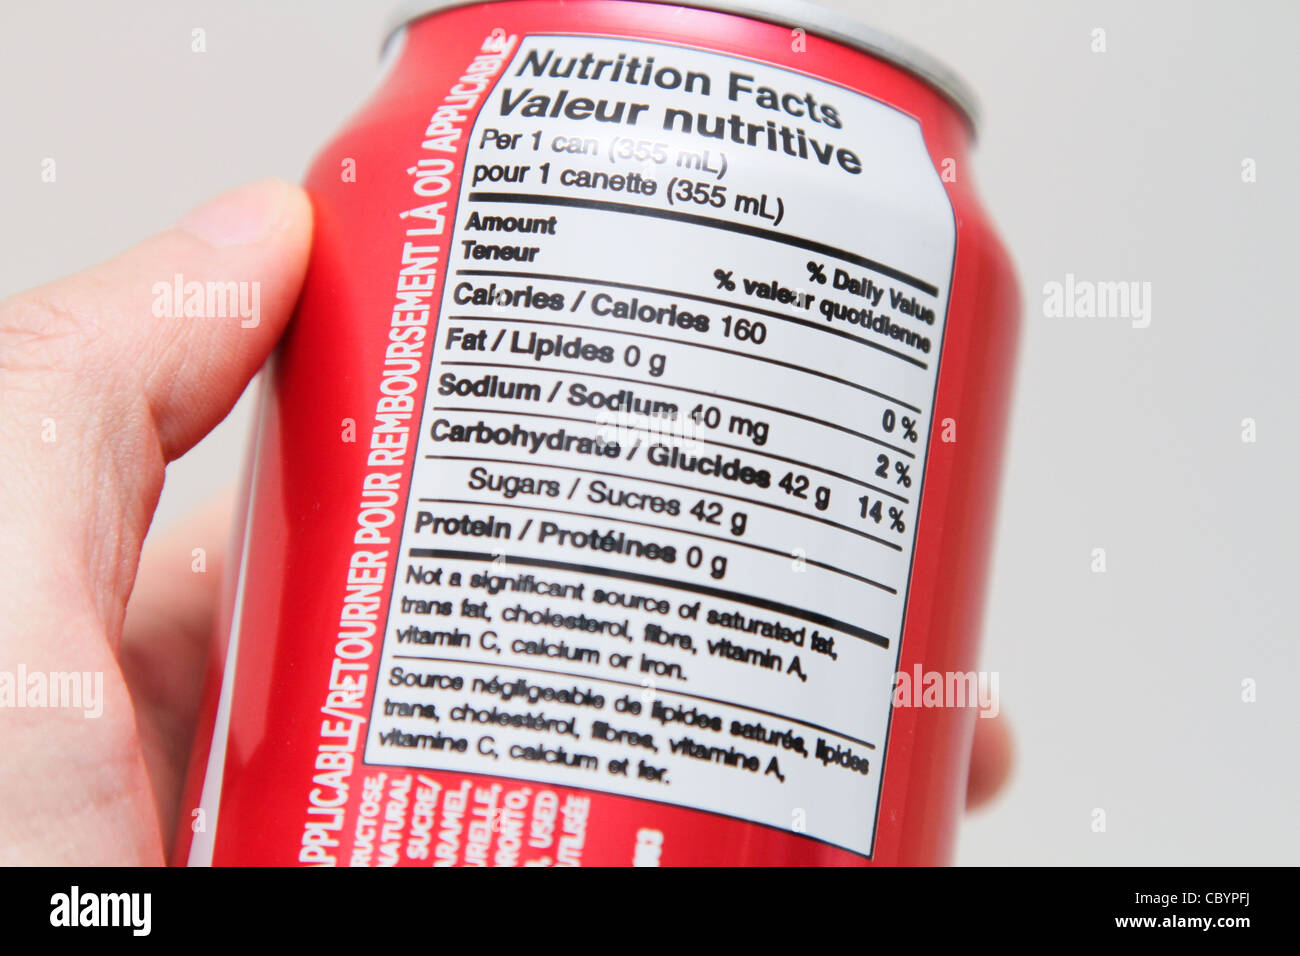 Nutrition Label For Coke